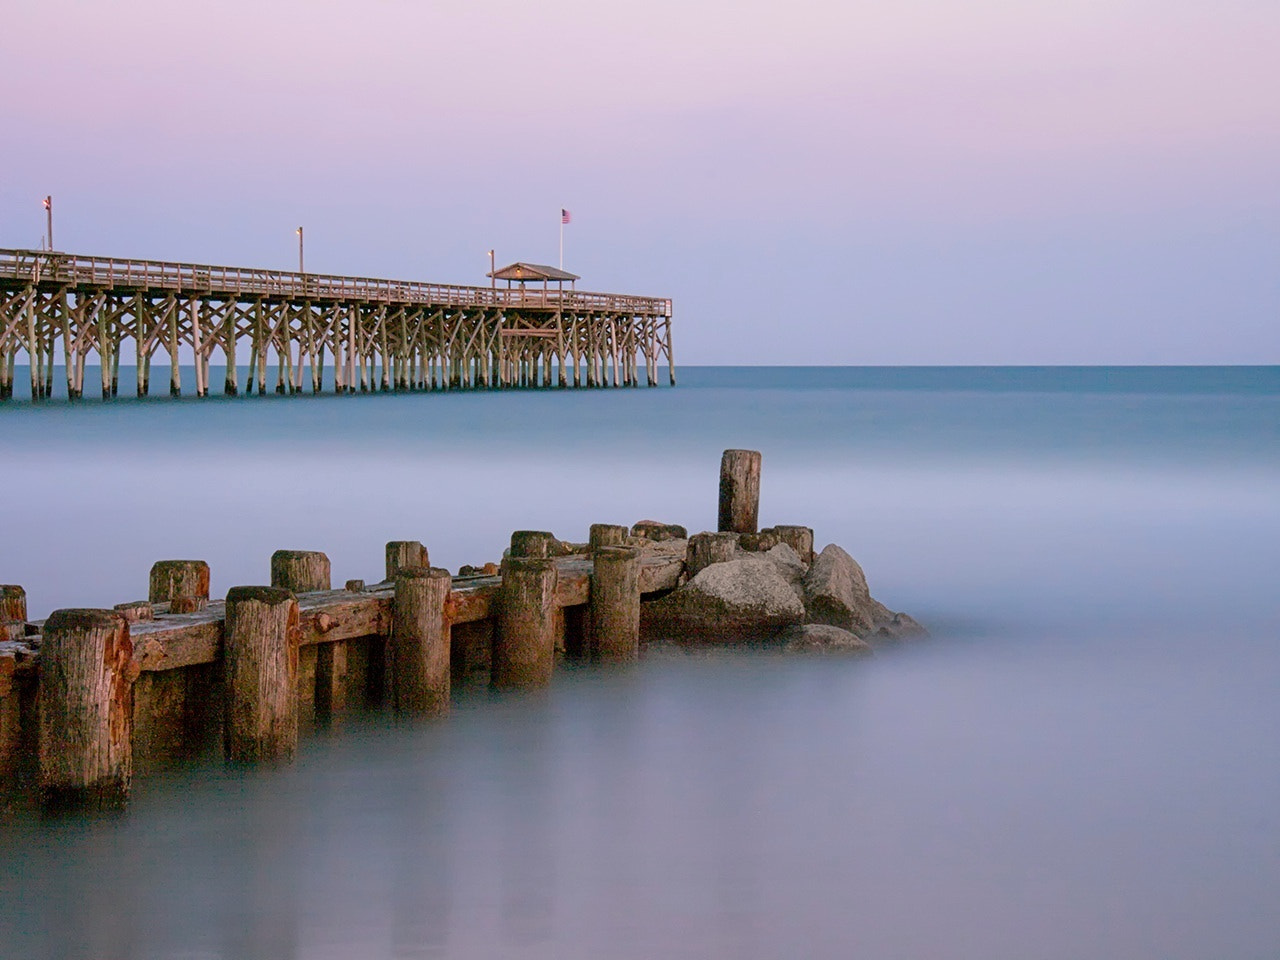 Photograph Pier and Groin by James Hilliard on 500px